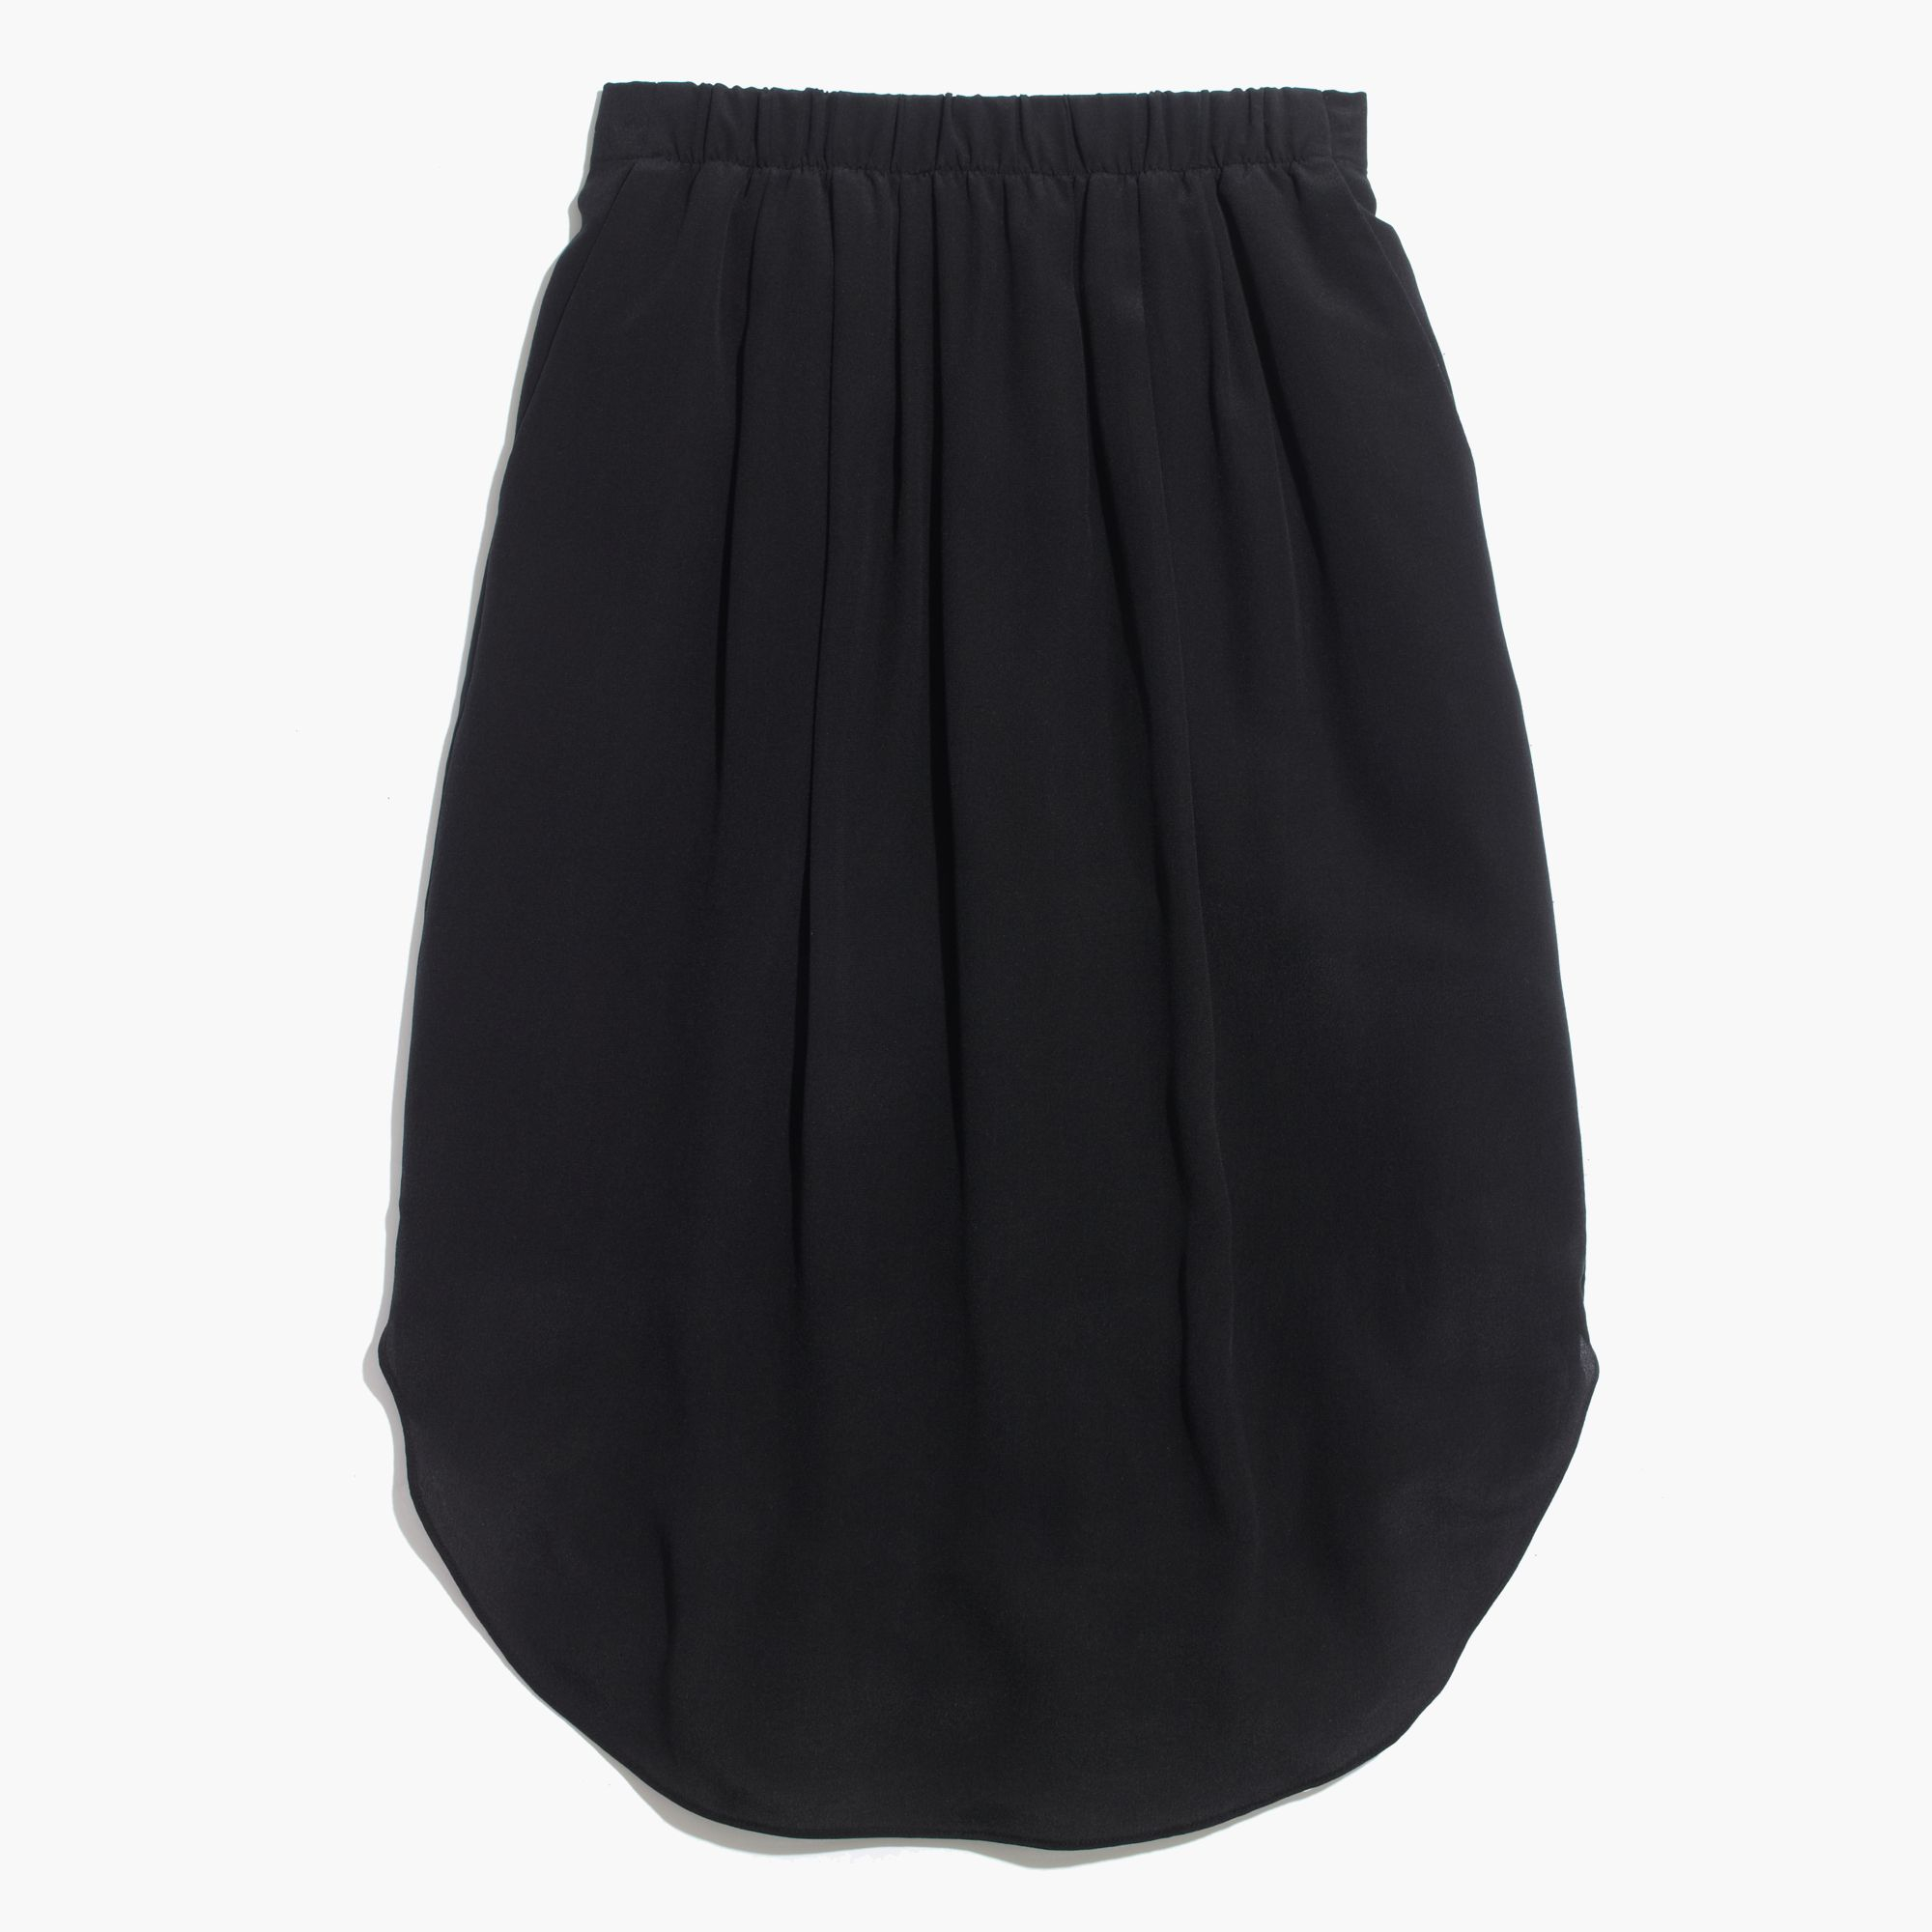 Madewell Silk Island Skirt in Black | Lyst